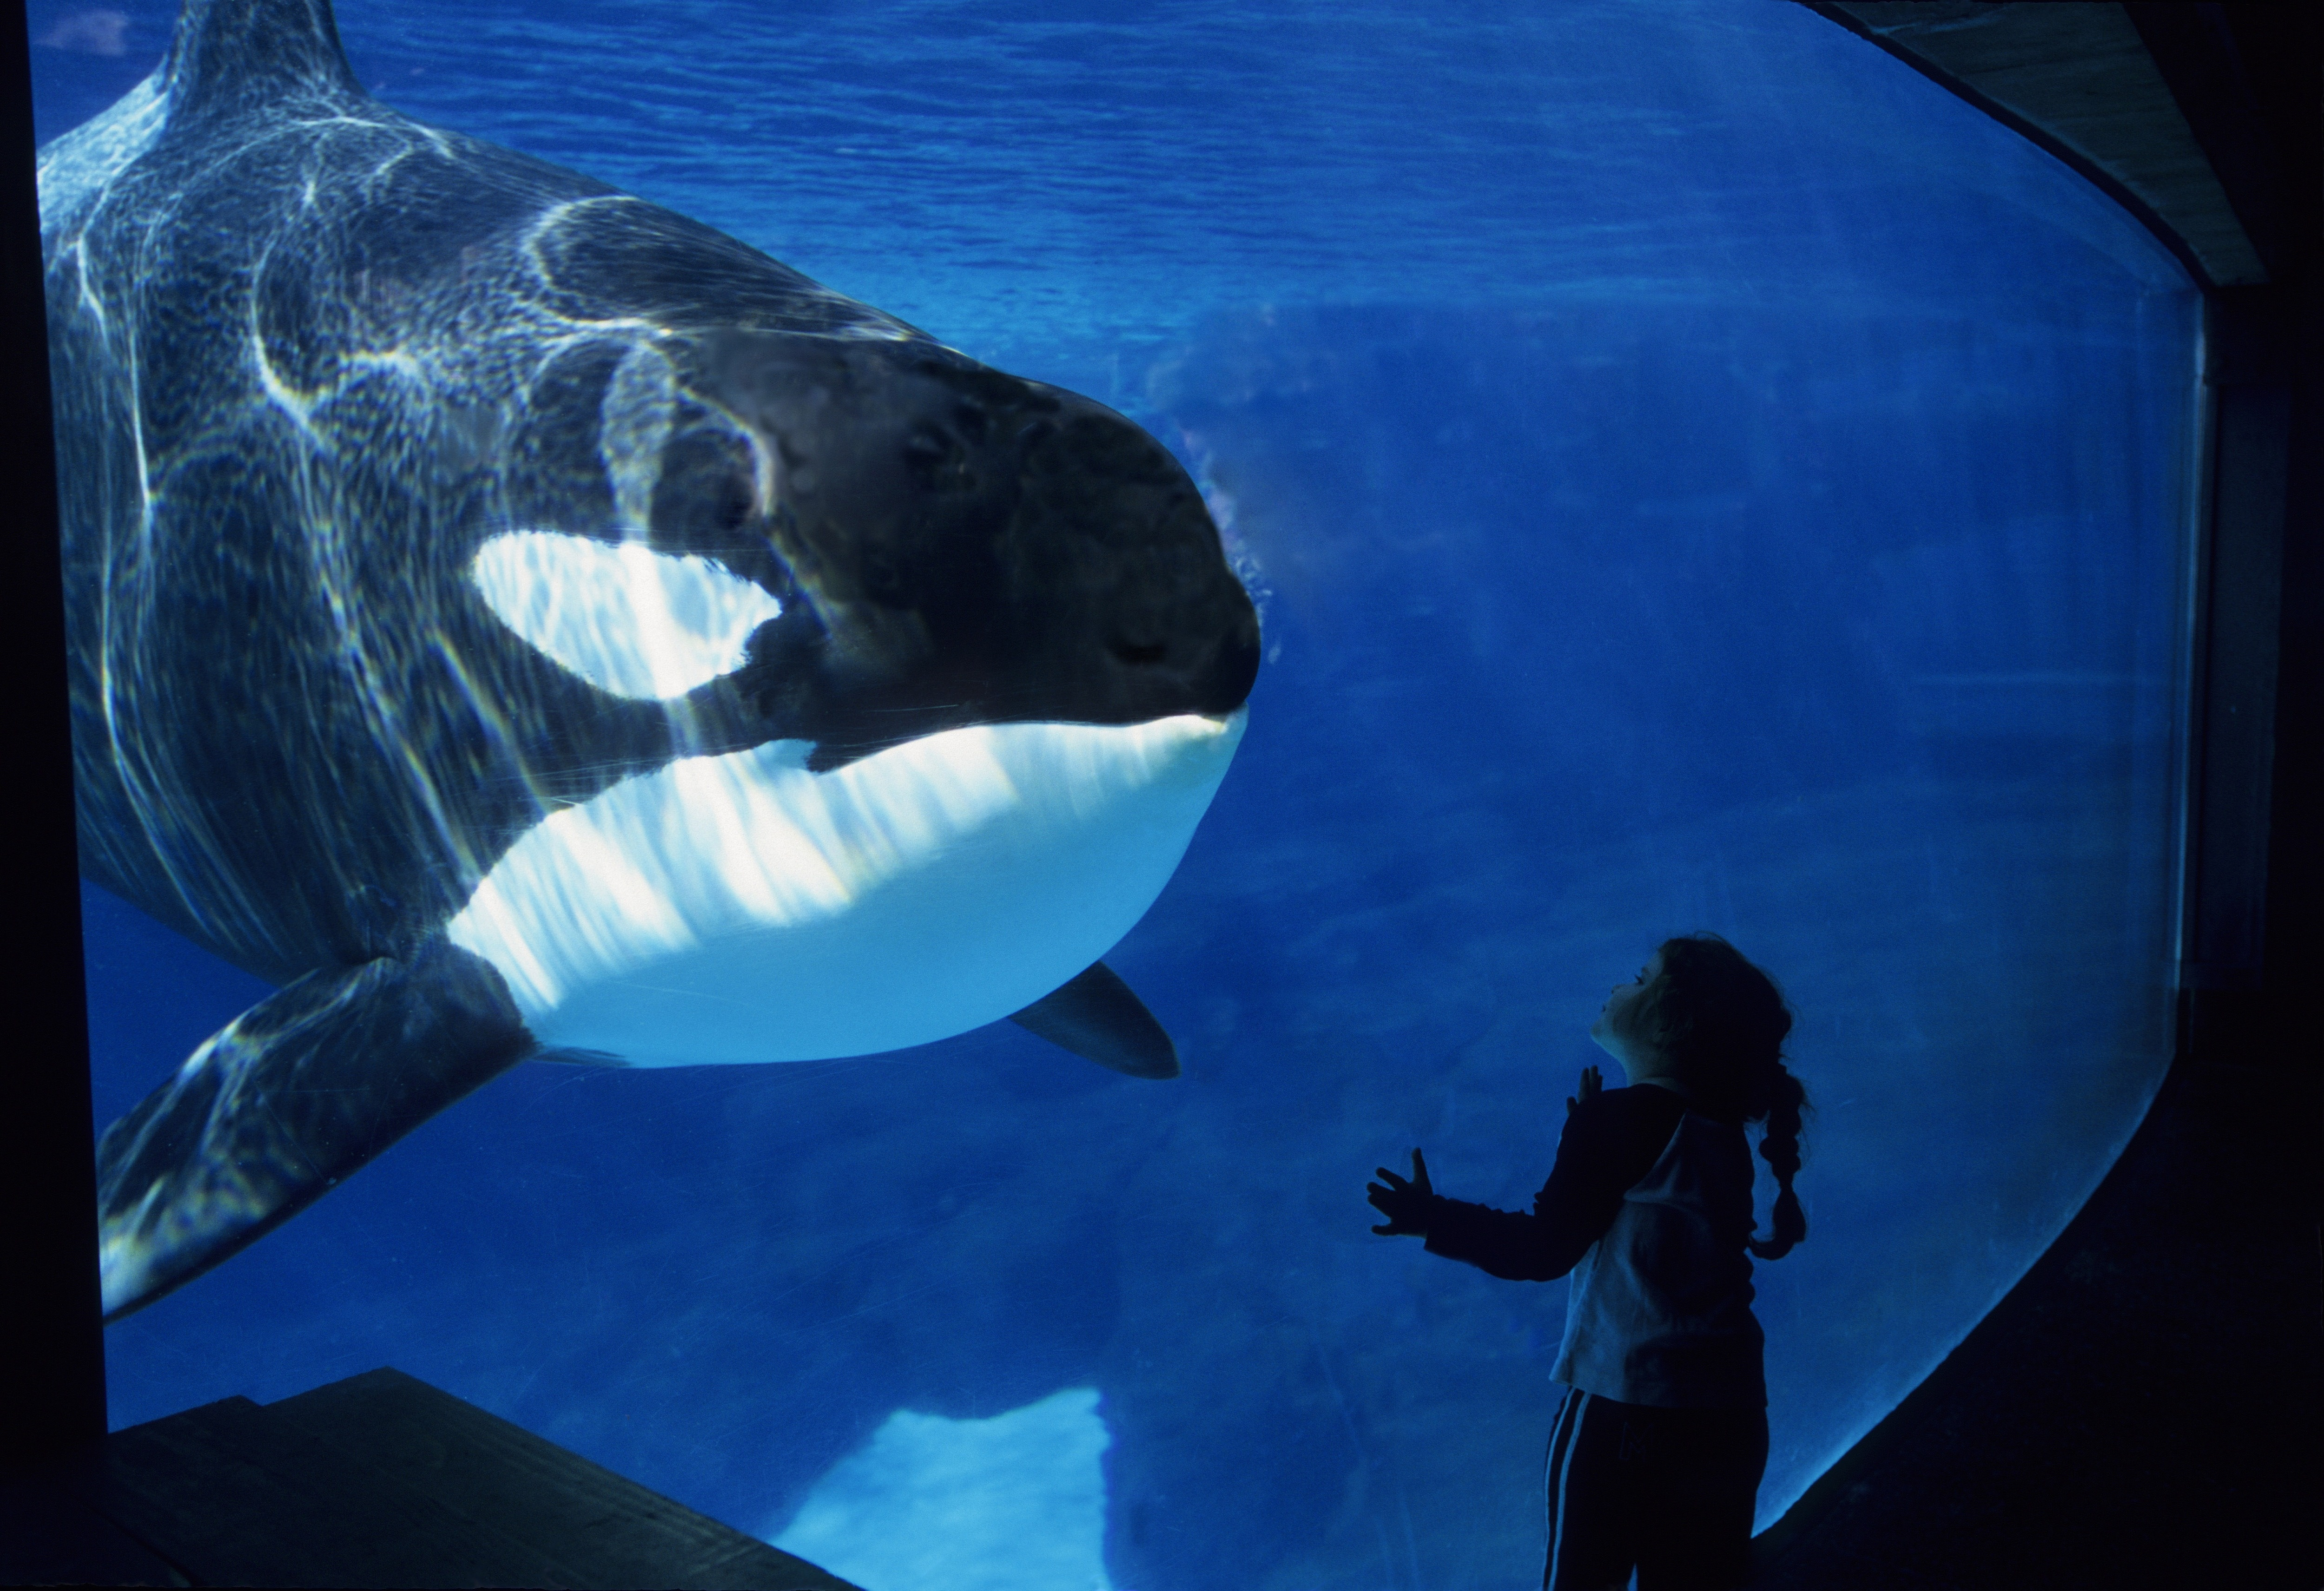 A killer whale (orca) at SeaWorld in San Diego.